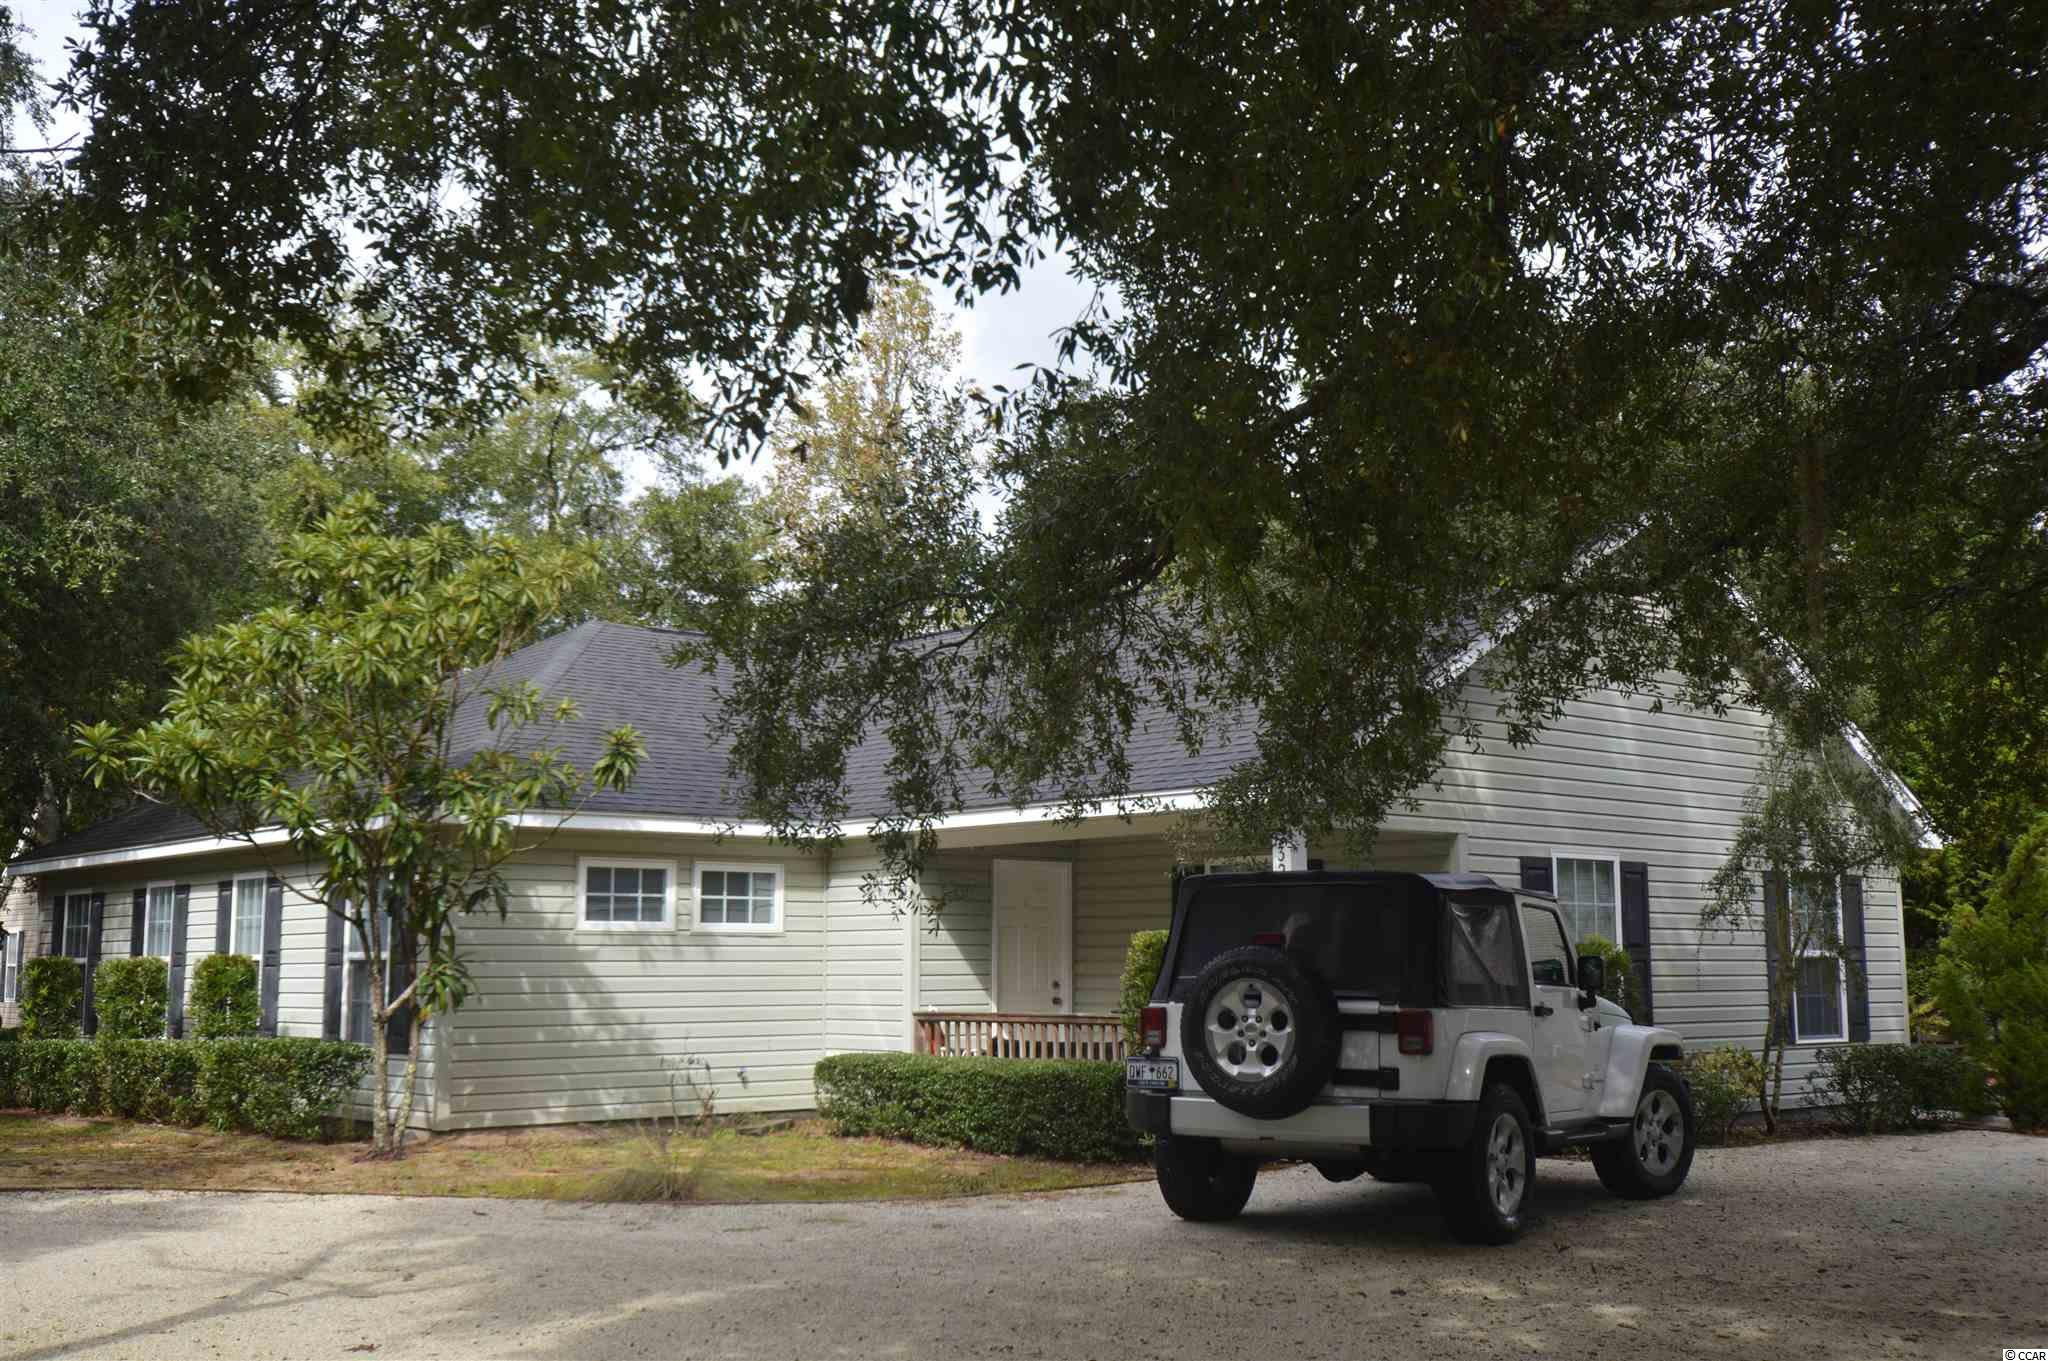 Minutes away from the beach!  Just a golf cart ride away or a bike ride!  Built in 2008 by owners.  Live on one side and rent the other!  No HOA! Not in a flood zone. It doesn't get any better!! Very well maintained.